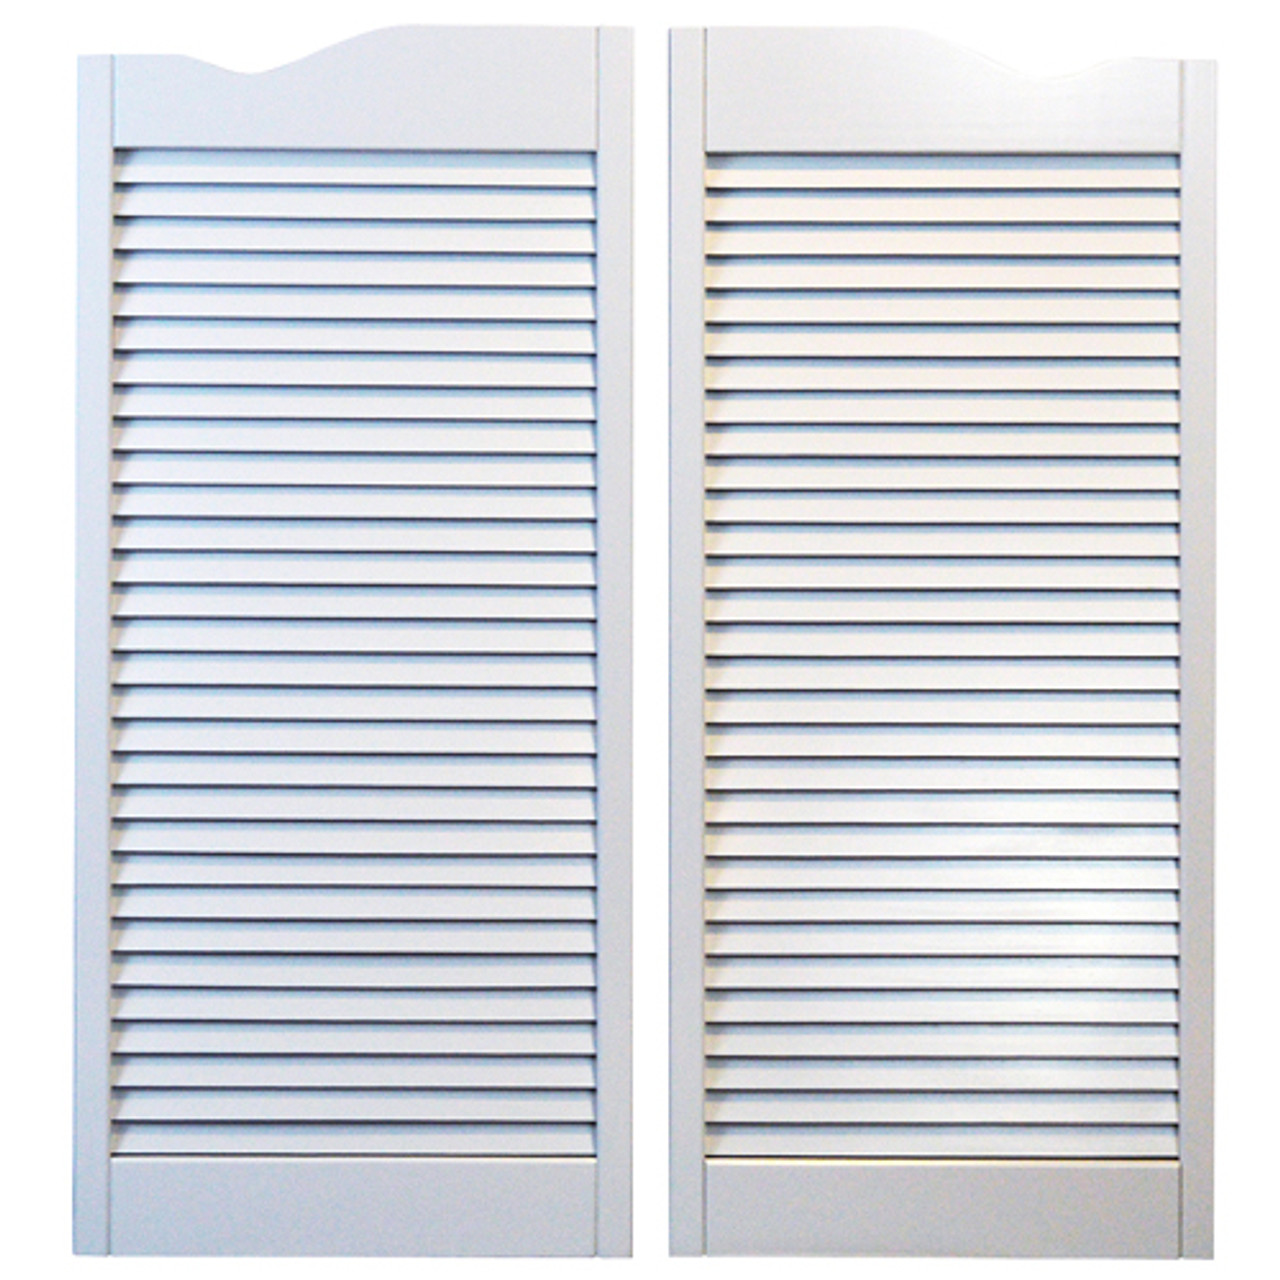 "White Saloon Doors Louvered 24"" Door Opening"